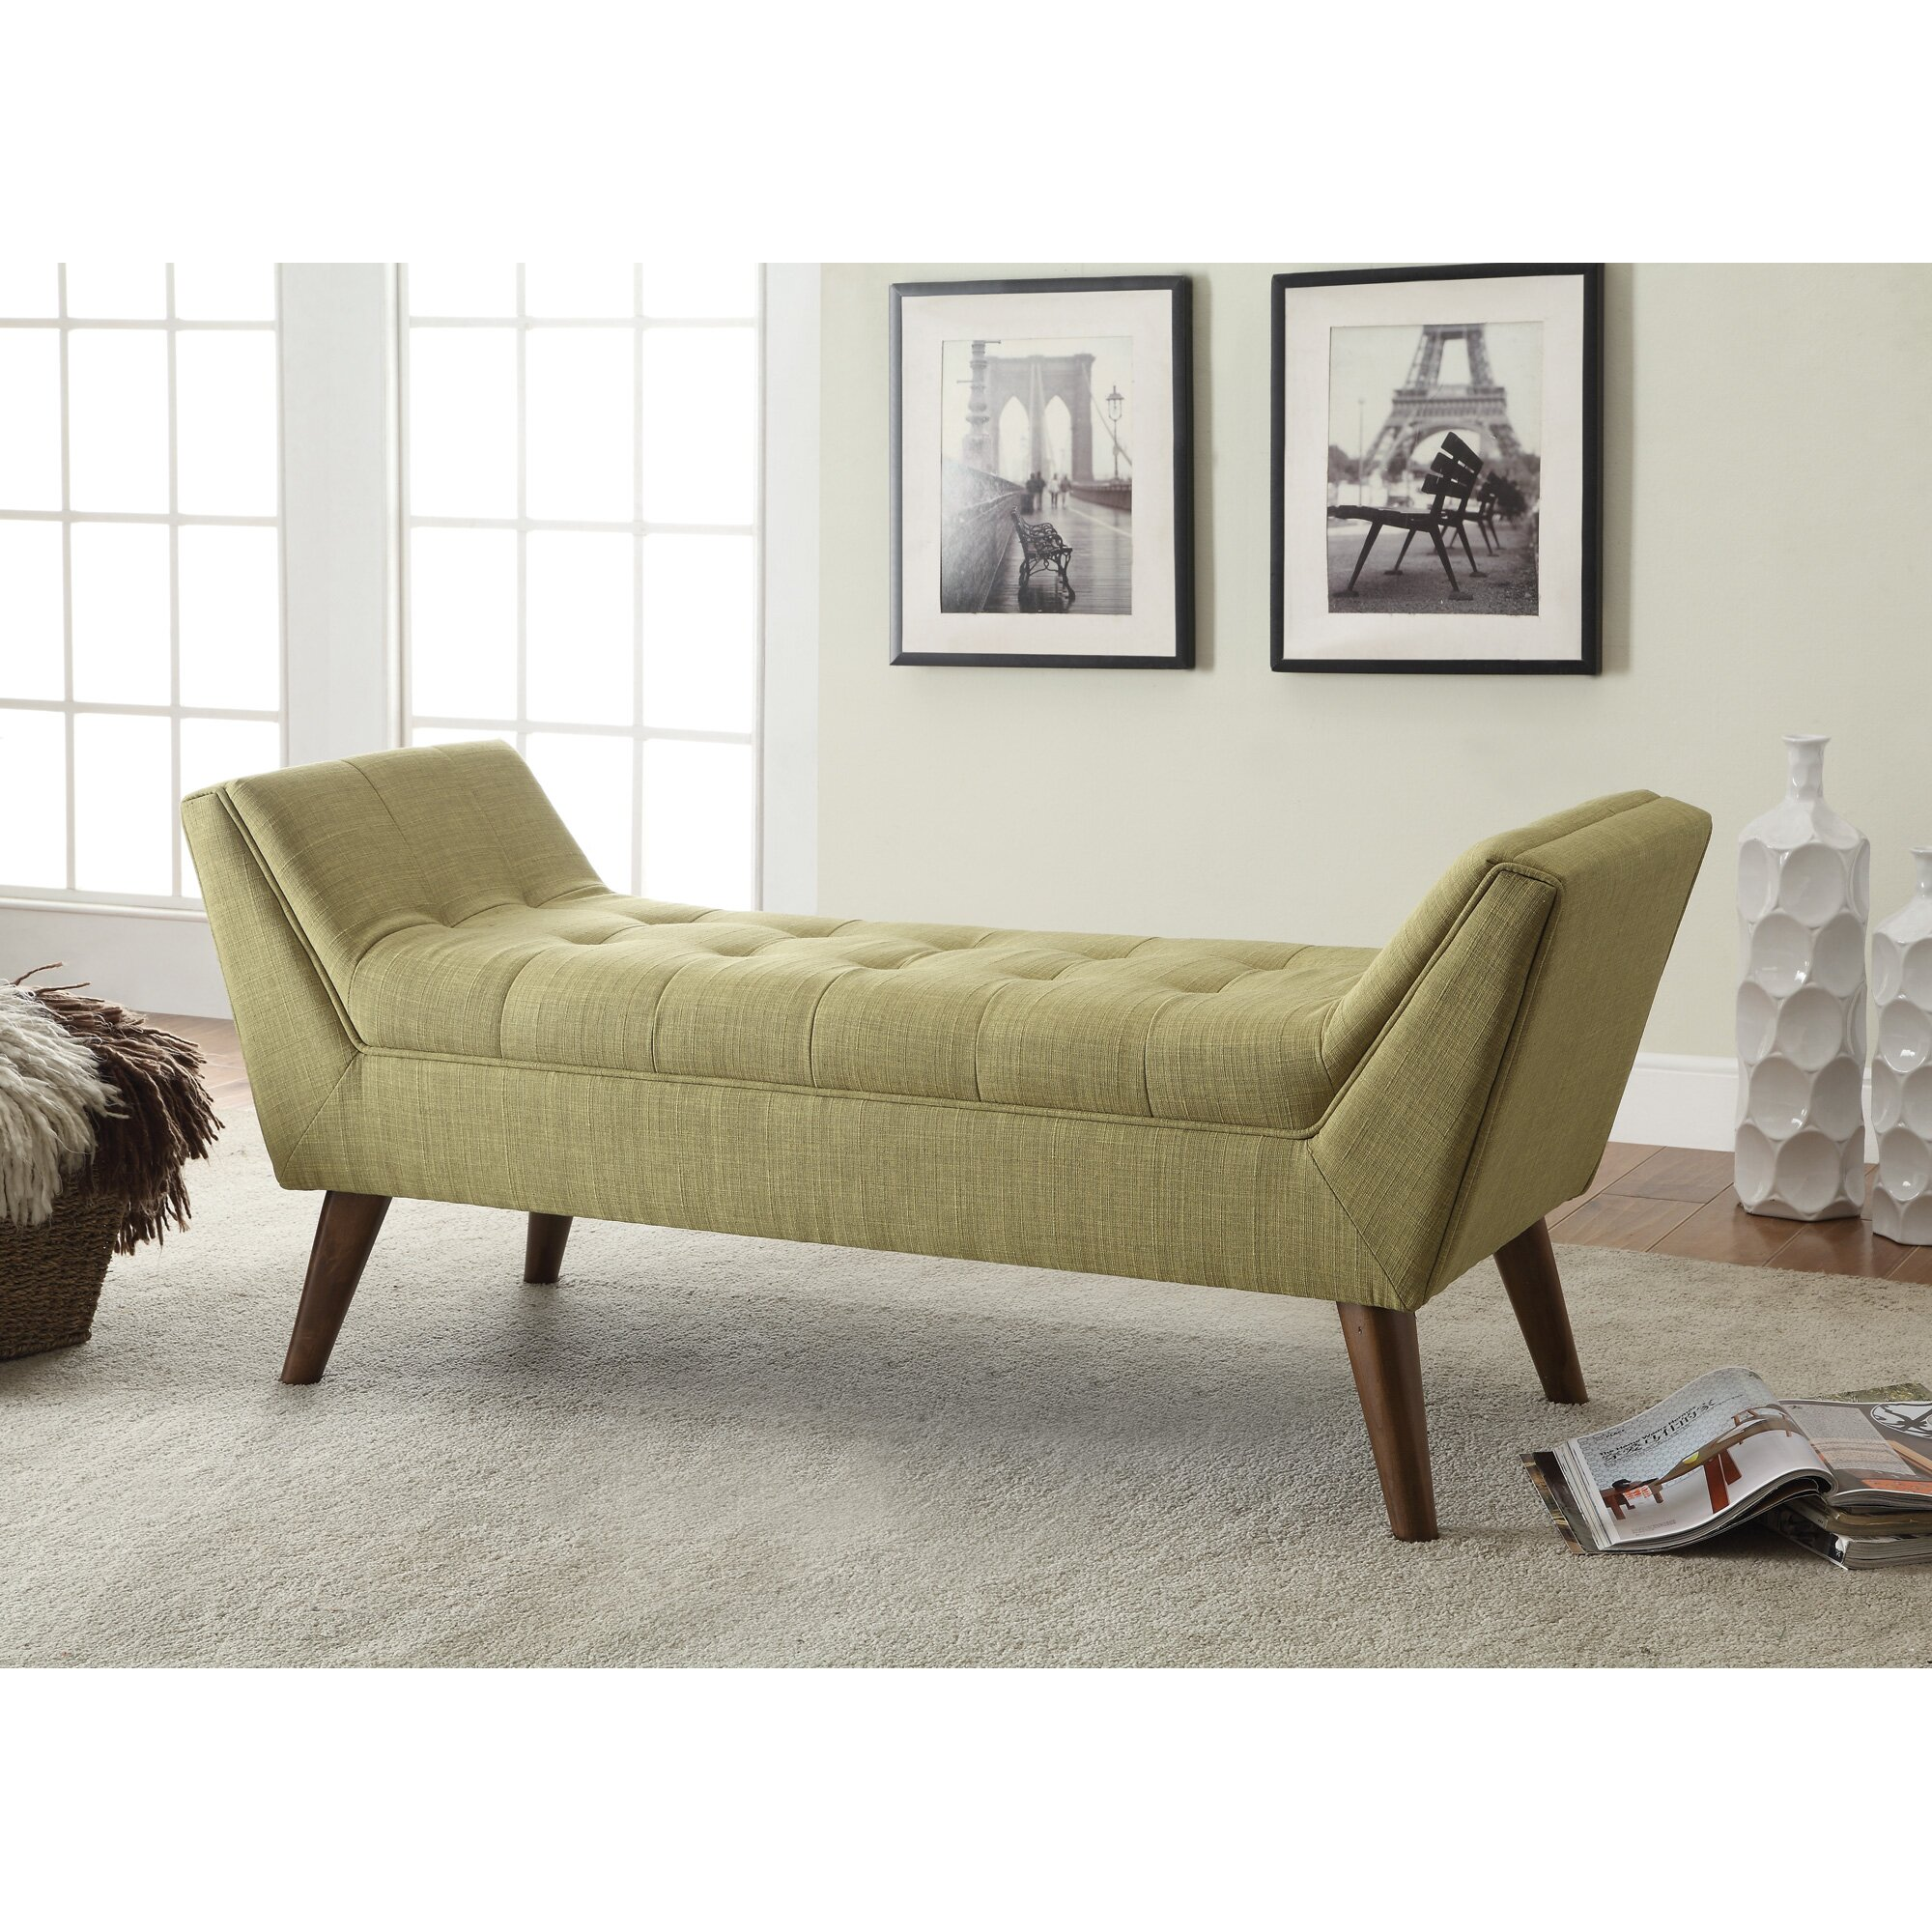 Langley street serena upholstered bedroom bench reviews wayfair - Benches for bedrooms ...